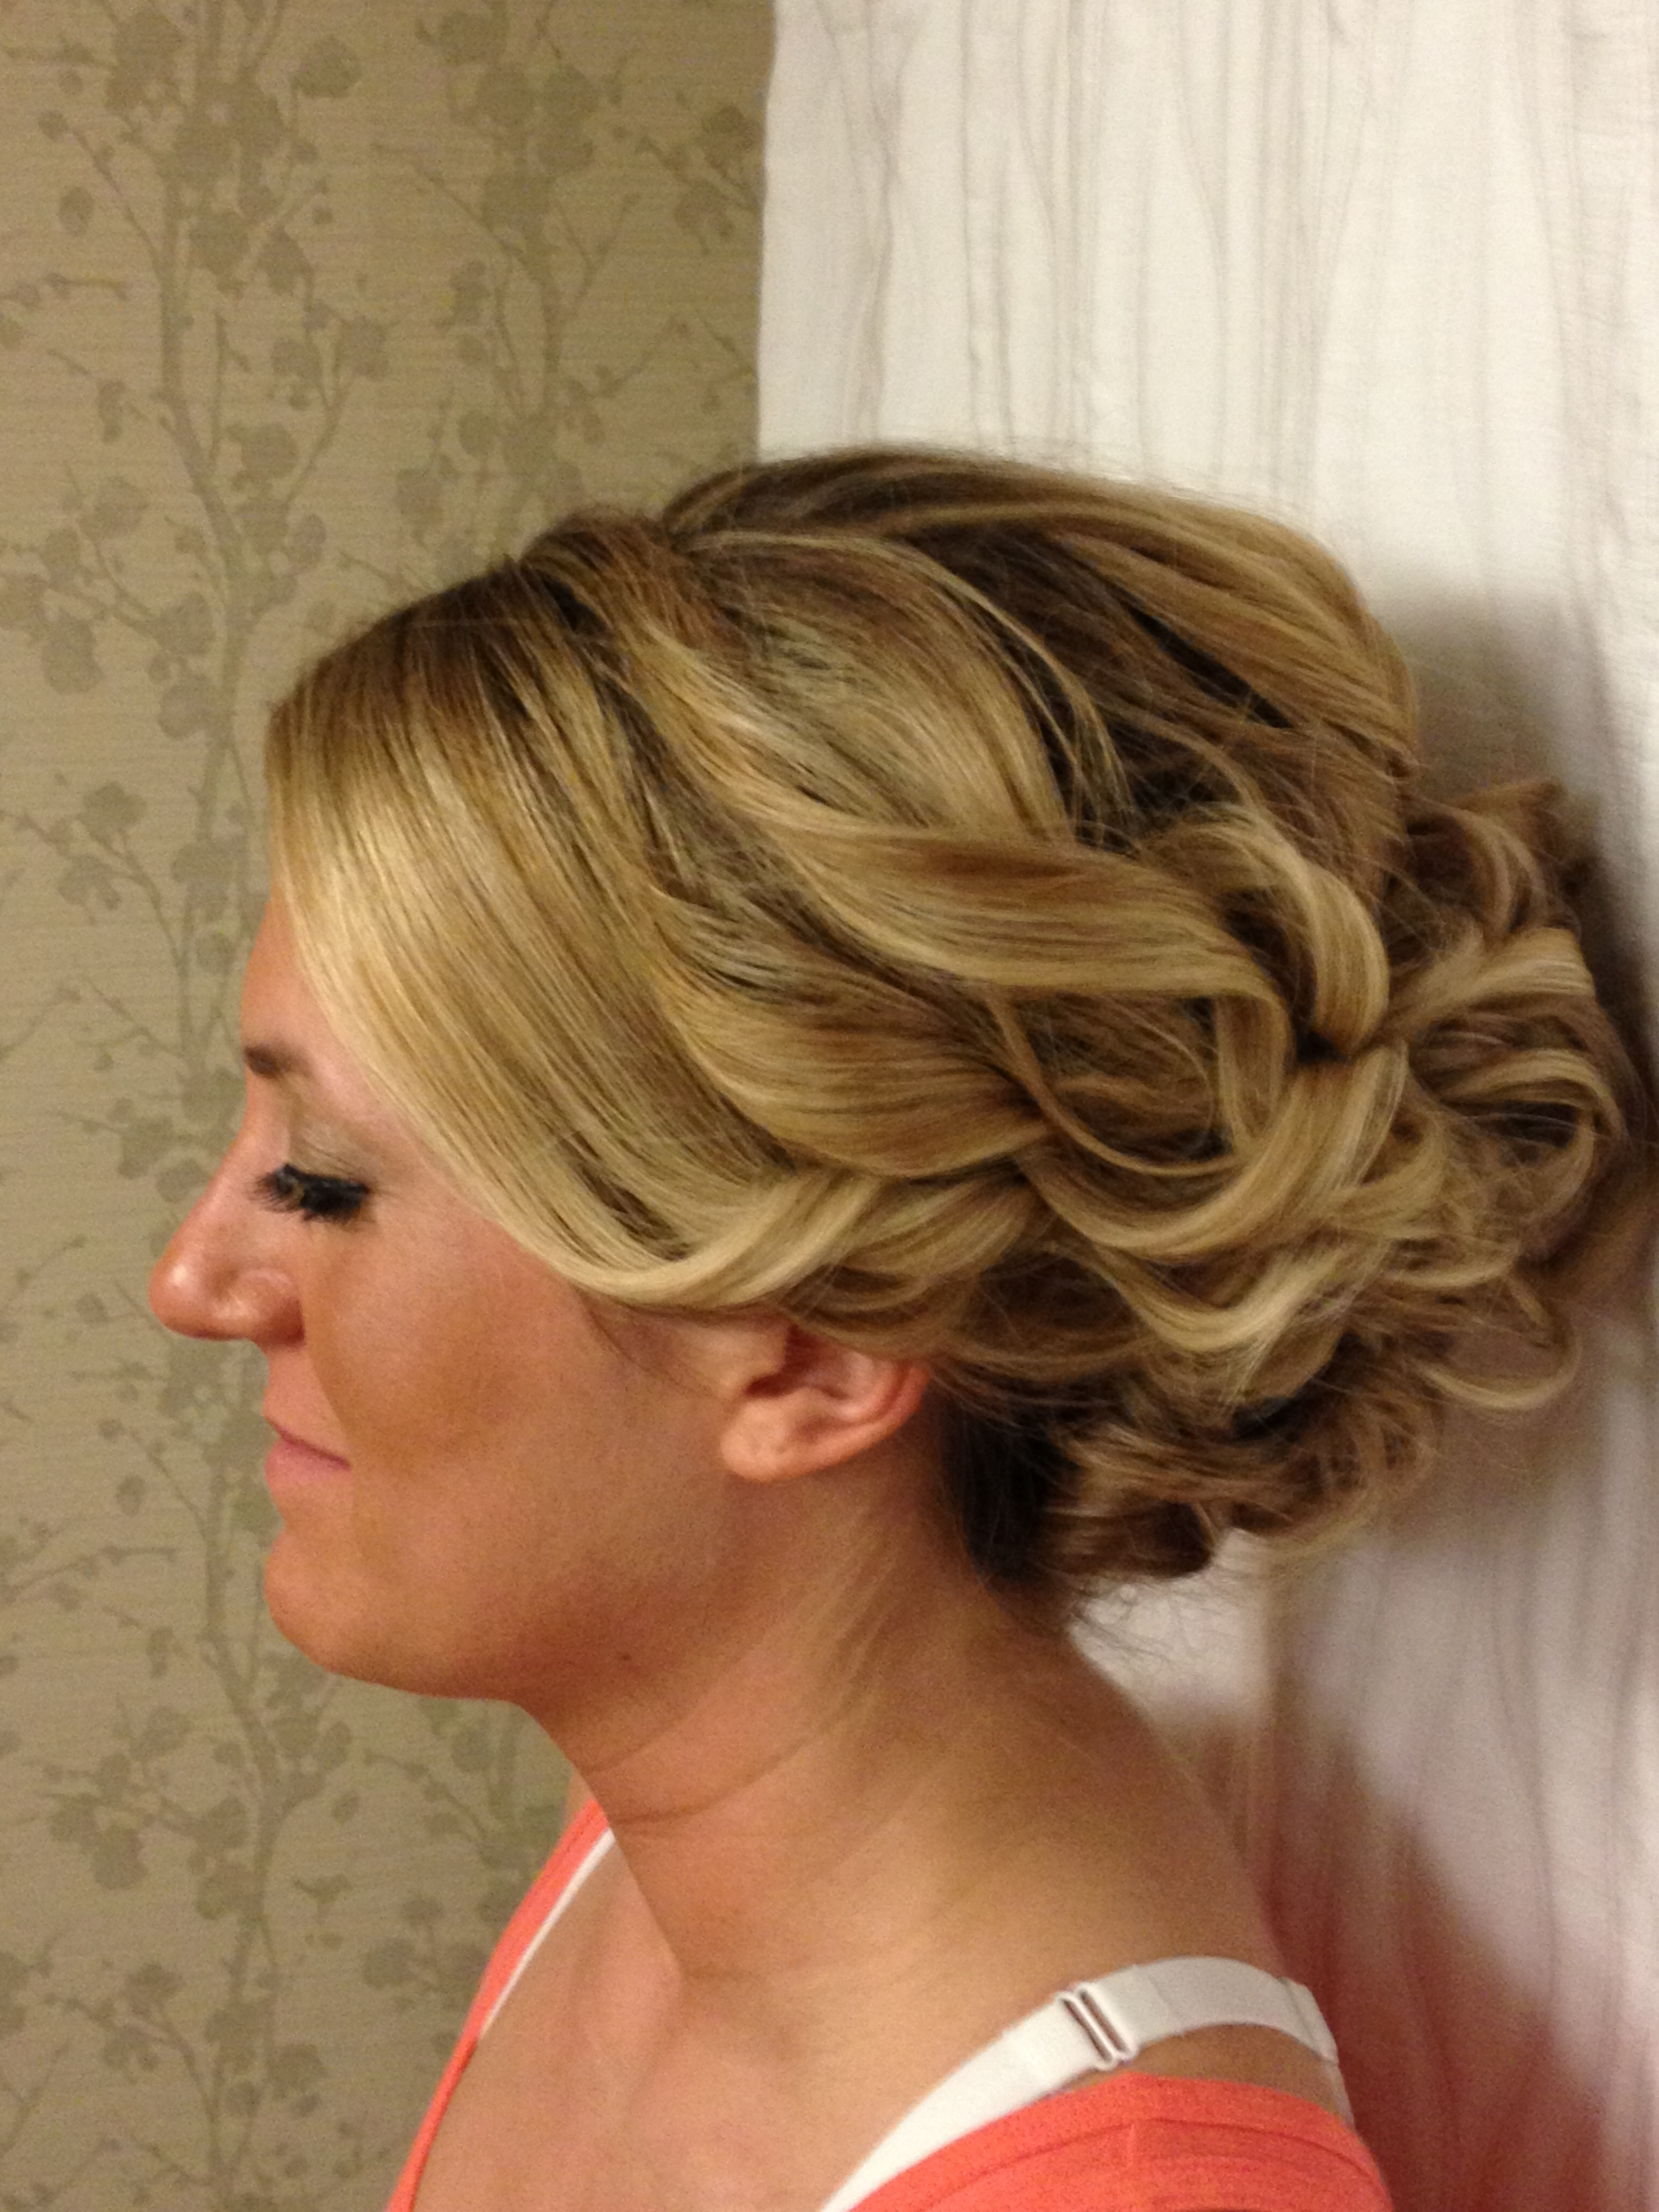 Hairstyles Updos Tumblr Updo For Prom Long Thick Impressive Hair With Updo Hairstyles For Long Thick Hair (View 8 of 15)